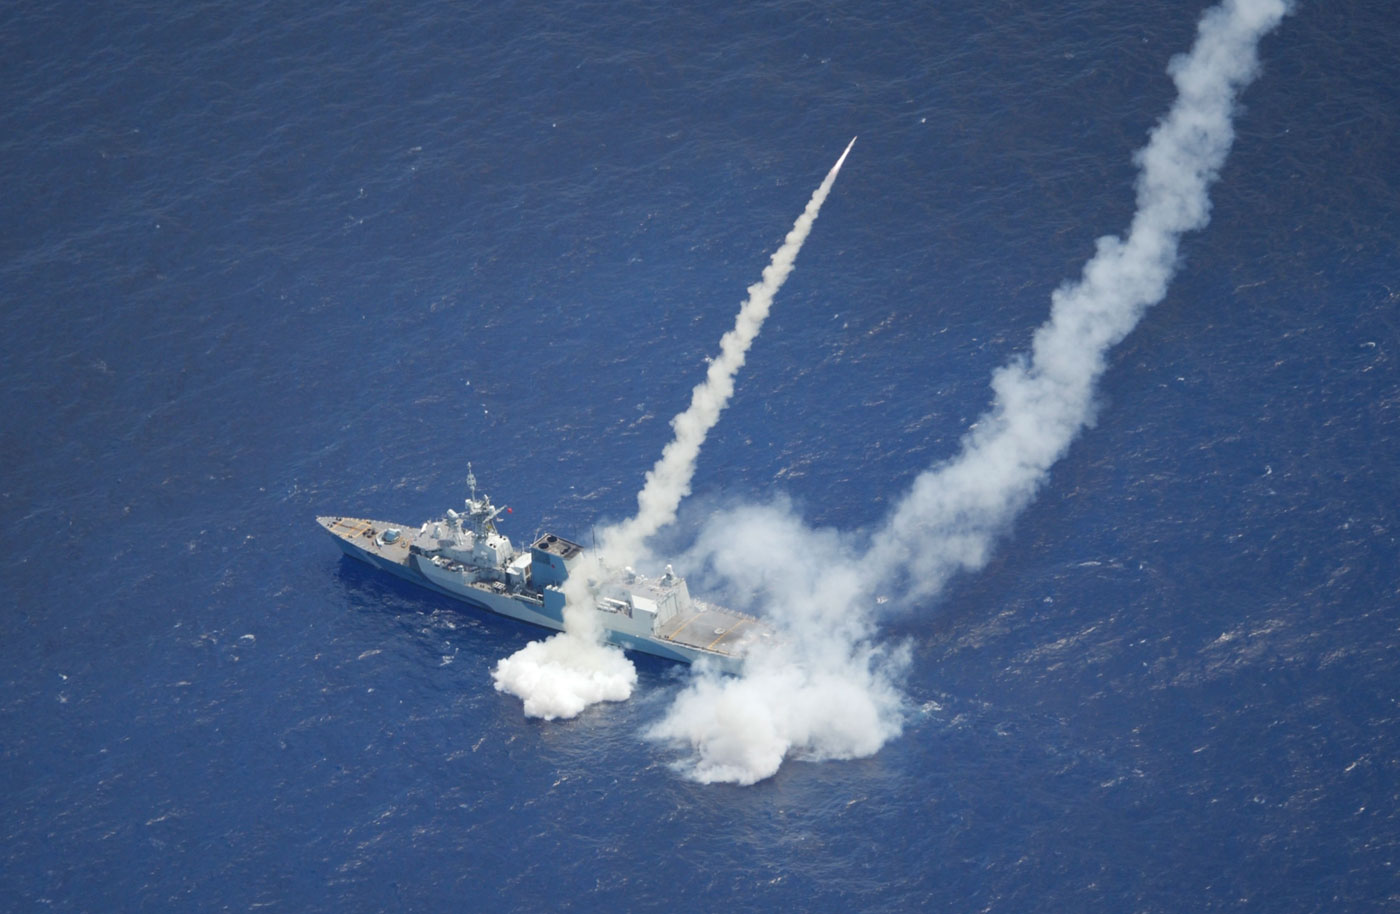 HMCS Regina fires two Harpoon Surface to Surface missiles in the Pacific Range Facility Barking Sands, off the coast of Hawaii while participating in Exercise Rim of the Pacific (RIMPAC) 2020. Photo by MS Dan Bard, Canadian Forces Combat Camera